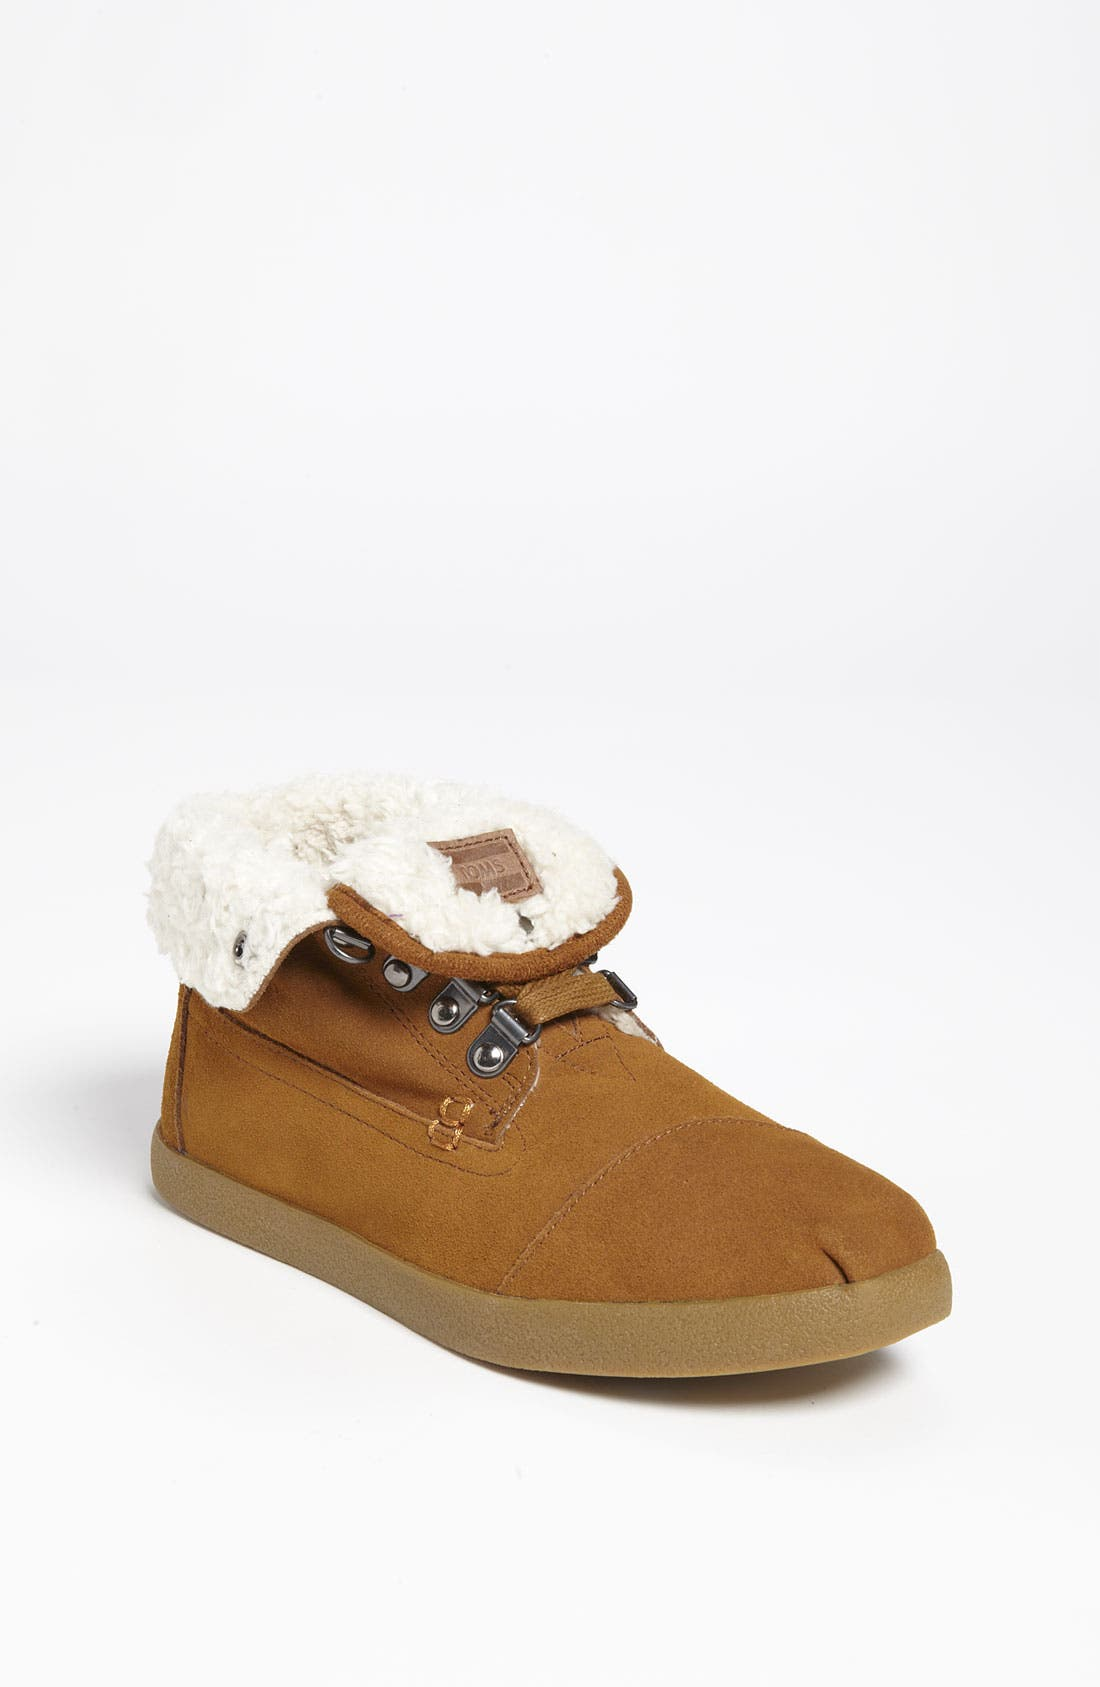 Main Image - TOMS 'Botas' Fleece Boot (Women)